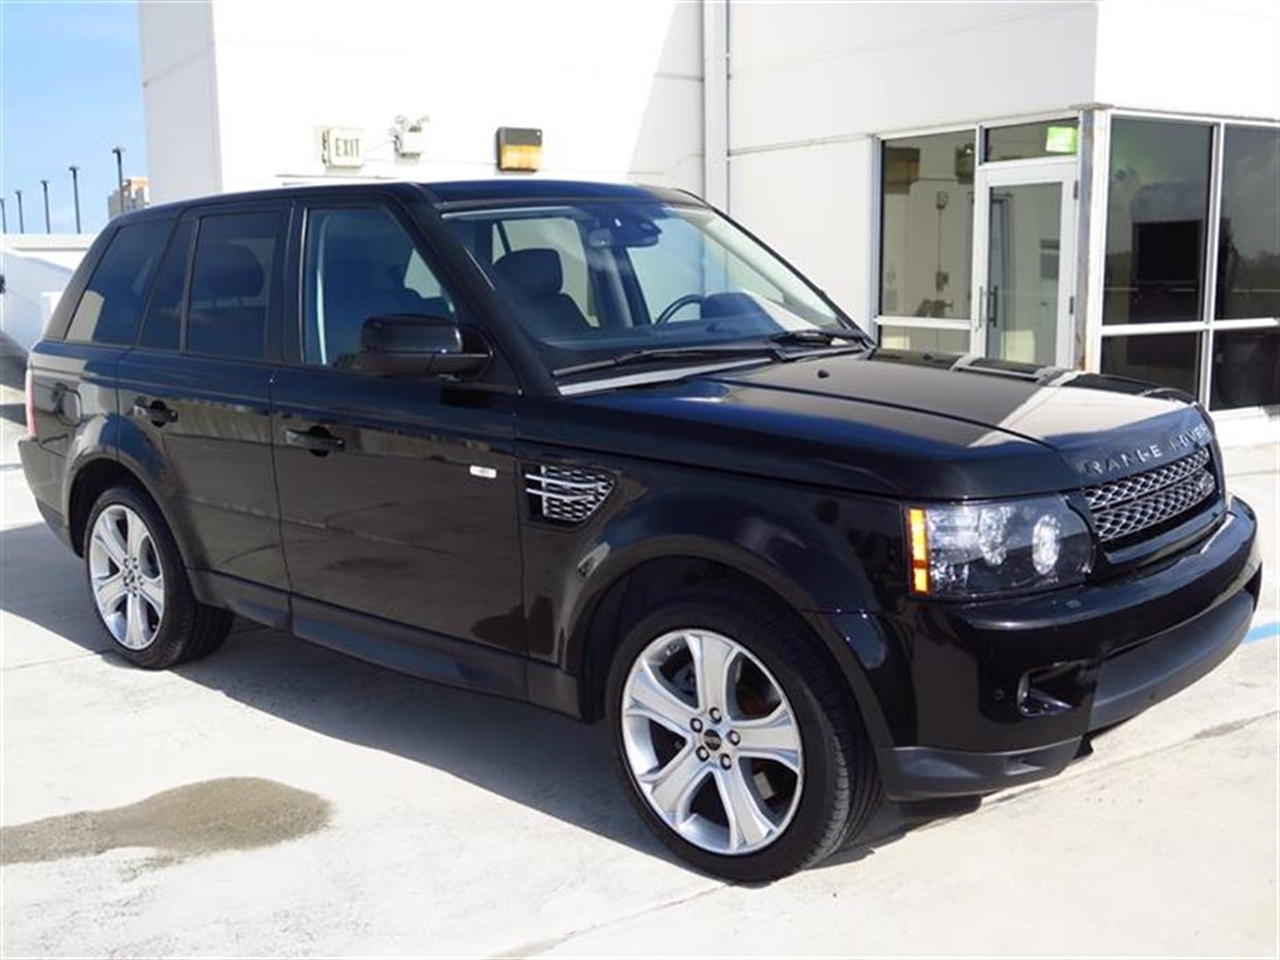 2012 LAND ROVER RANGE ROVER SPORT 4WD 4dr HSE LUX 43002 miles 6535 split folding heated rear seat